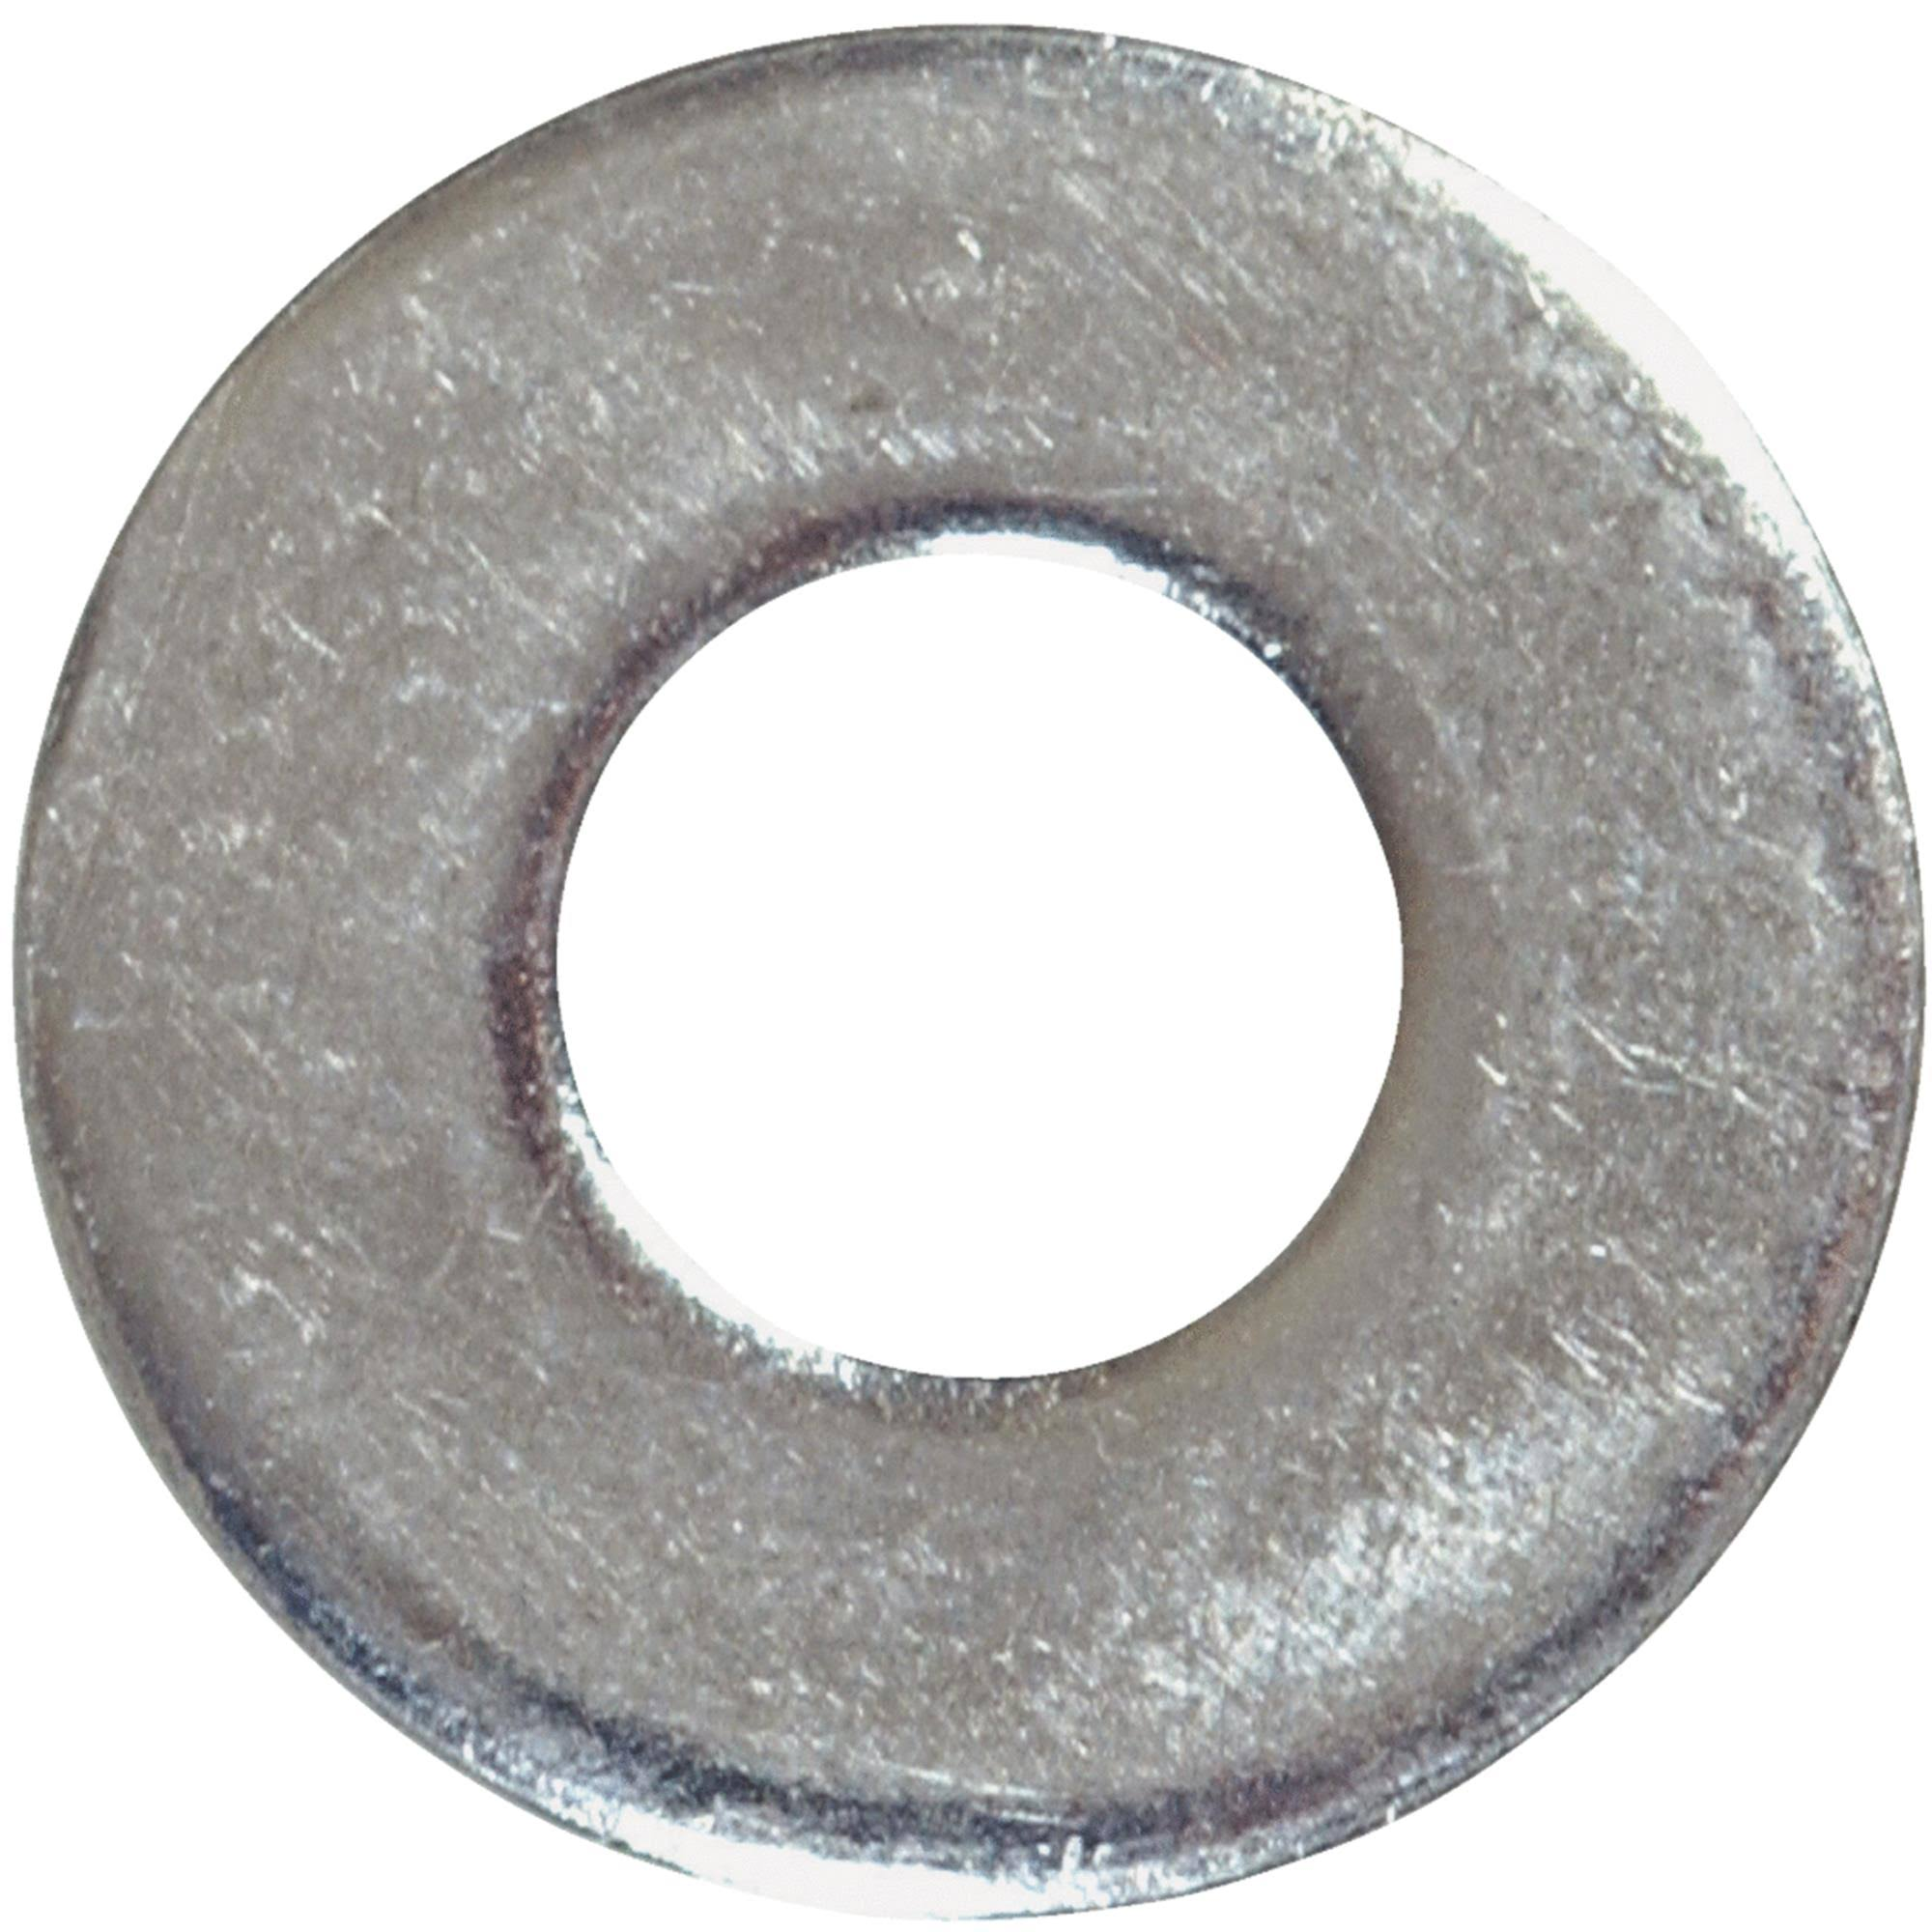 The Hillman Group Flat Washer - 1/4'', 100 Pack